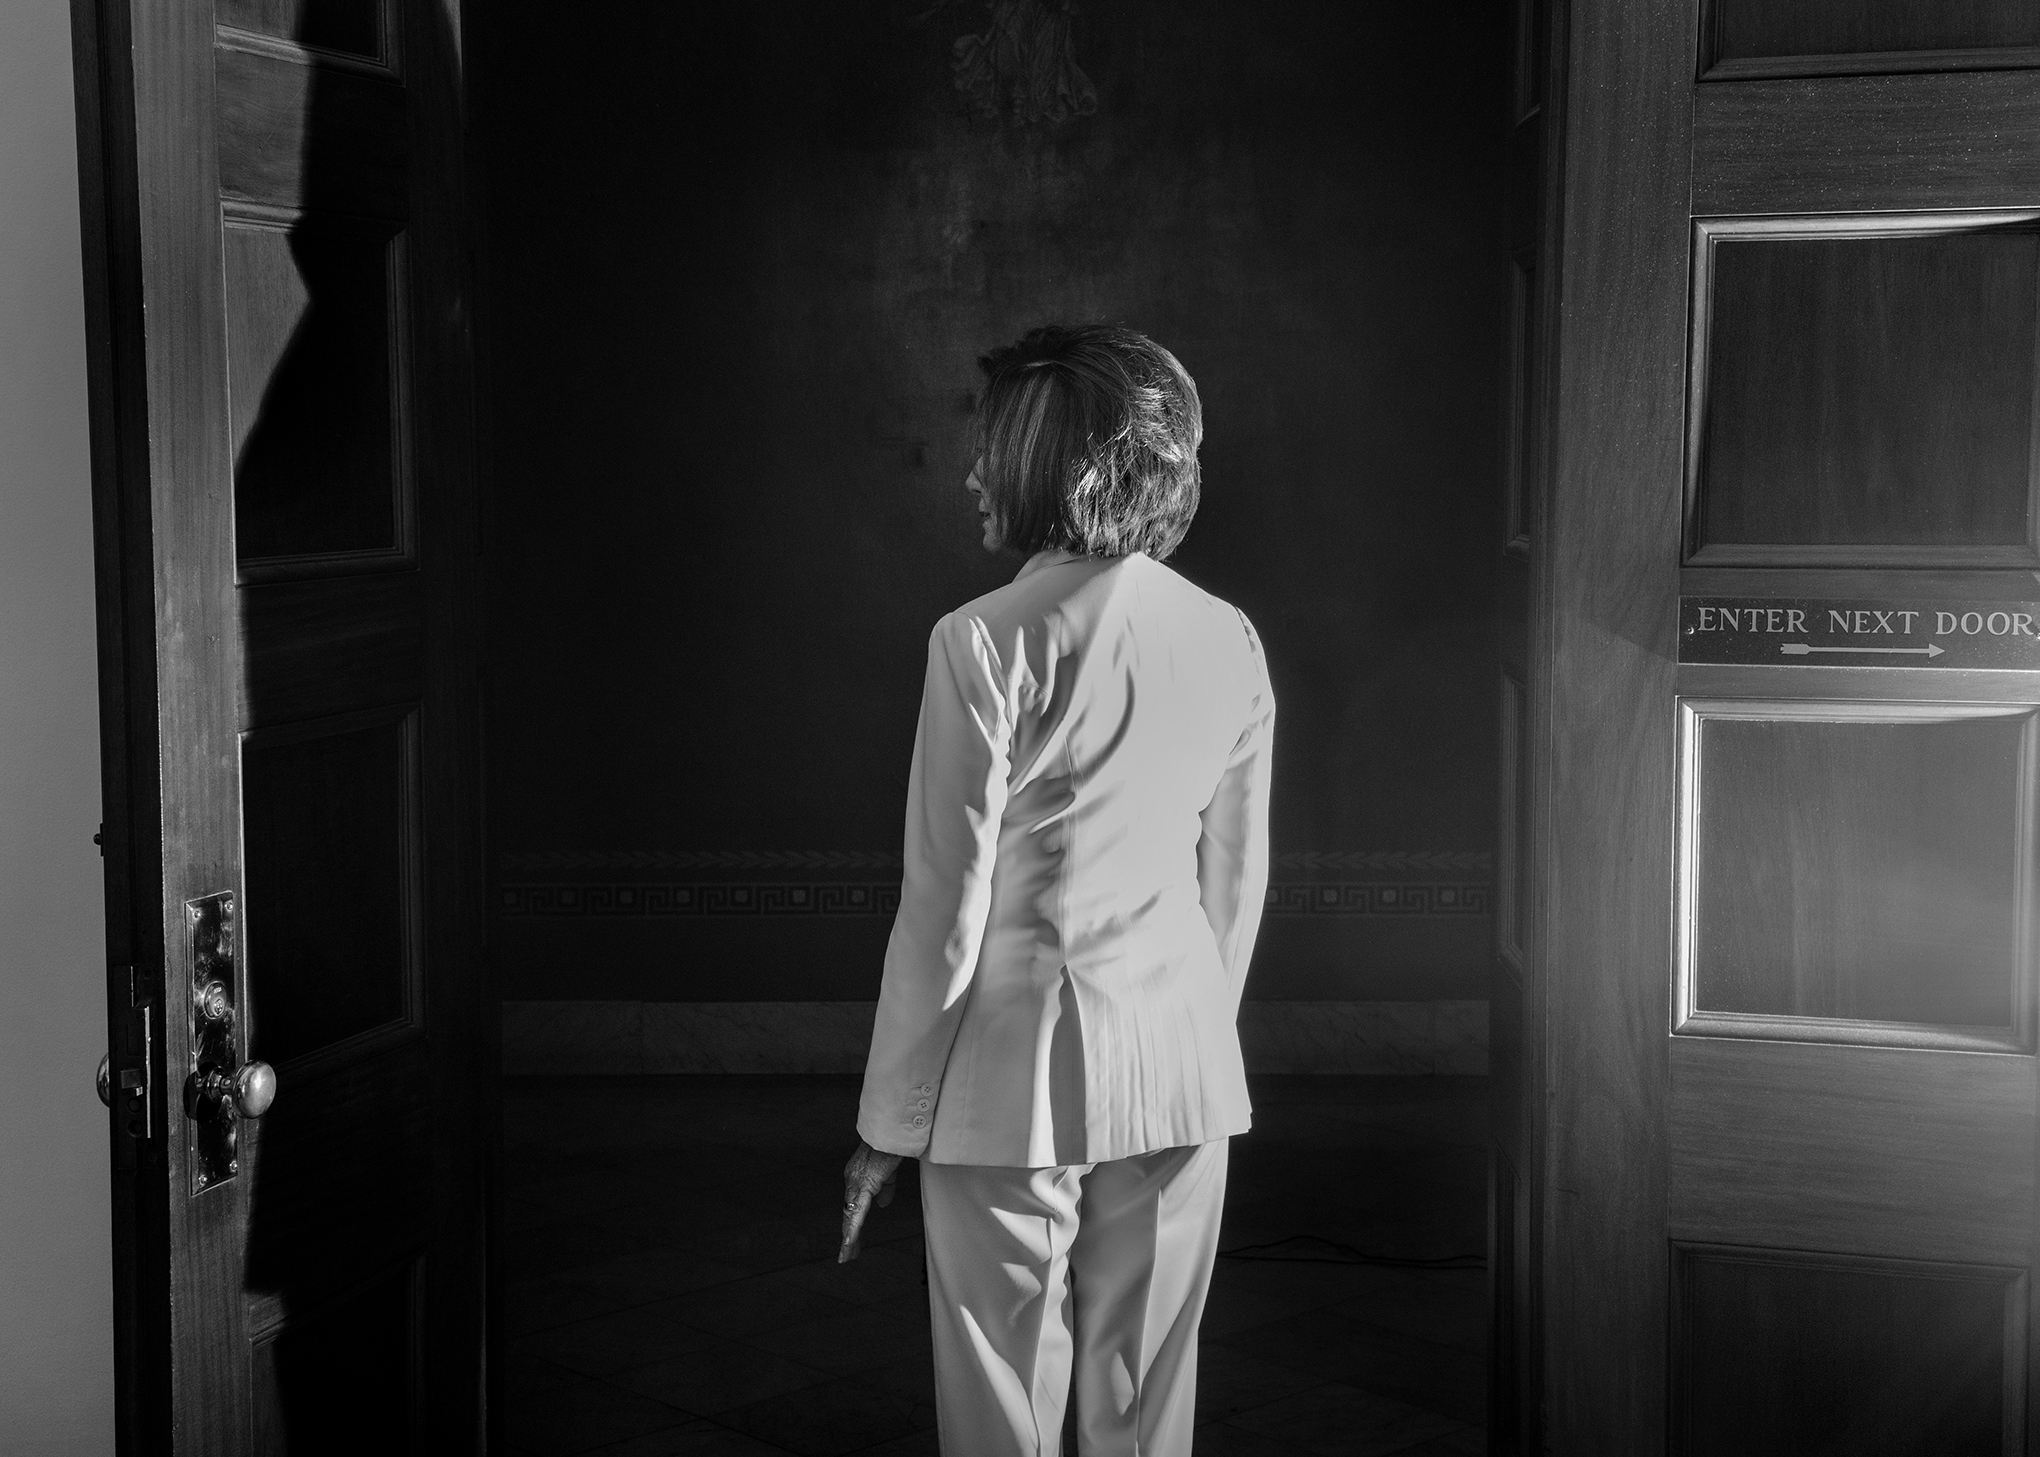 House Speaker Nancy Pelosi, photographed at the Capitol on Dec. 5, 2019, staked the 2020 elections on impeachment.  No one is above the law,  she said.